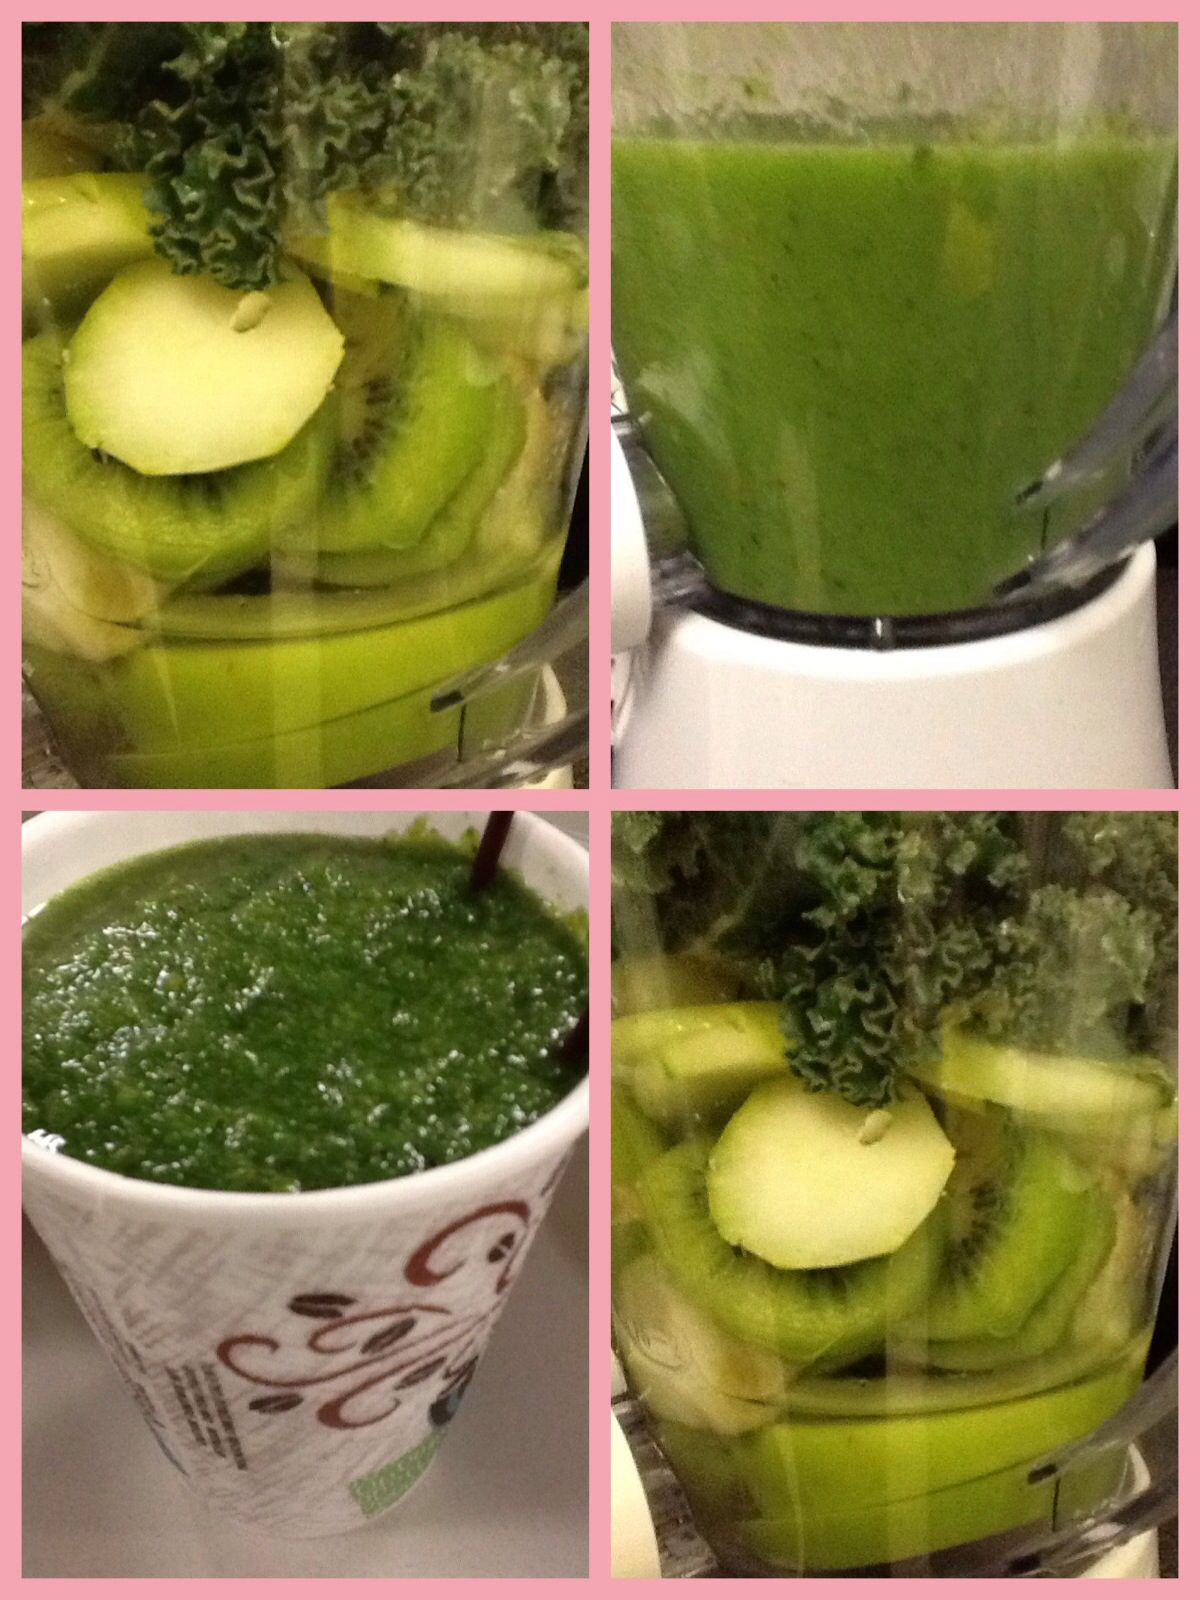 It was a Green Smoothie Morning Today. Granny Smith Apple, Kiwi, Cucumber, Kale, Spring Water, Teaspoon of Brown Sugar. Don't let the look fool you, it's mighty friendly. By UnaBerlinda... So filling that, lunch not until 2pm.